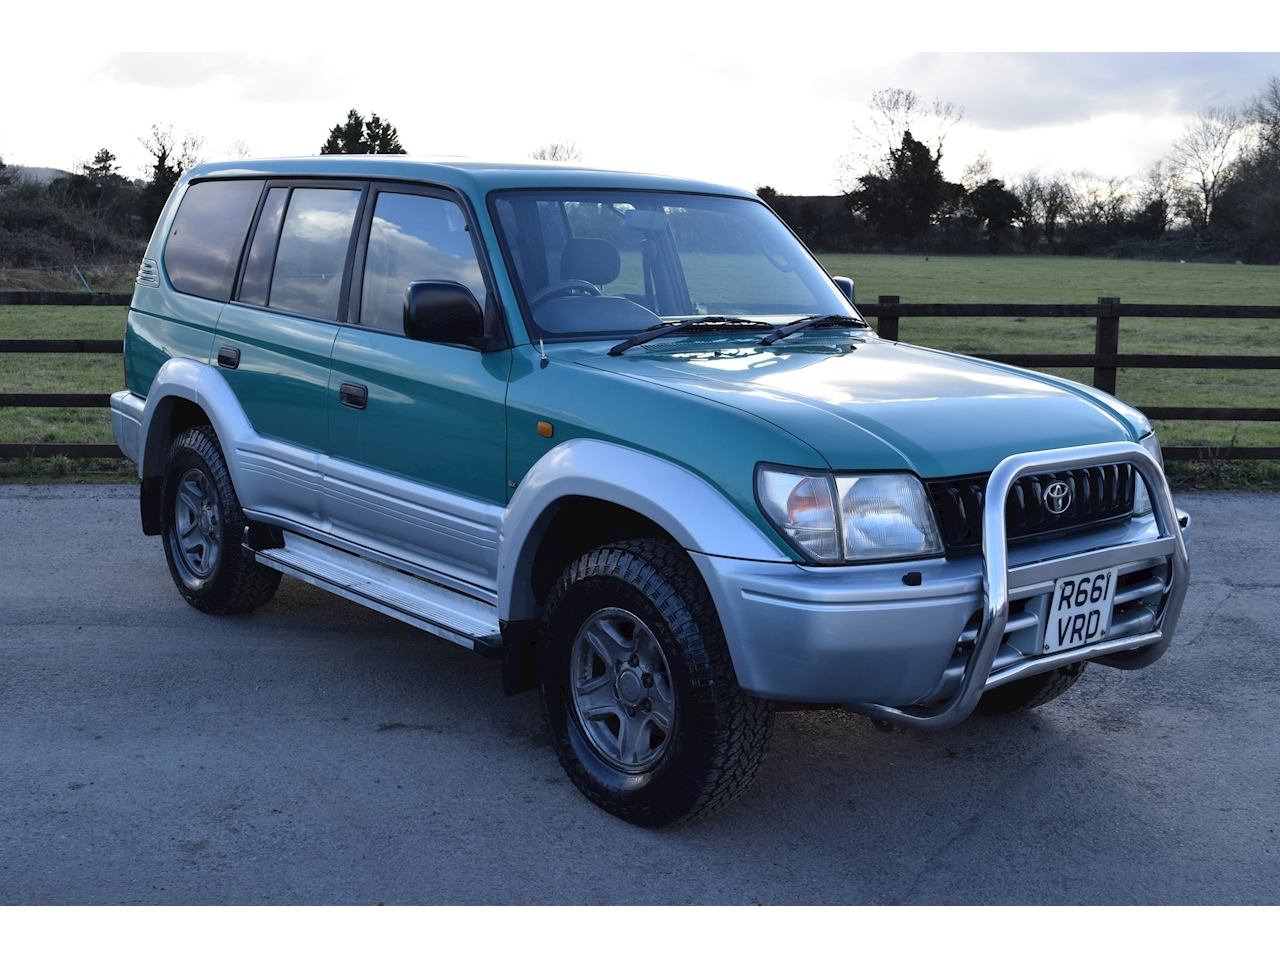 Toyota Land Cruiser Colorado Gx Td 3.0 5dr Estate Automatic Diesel